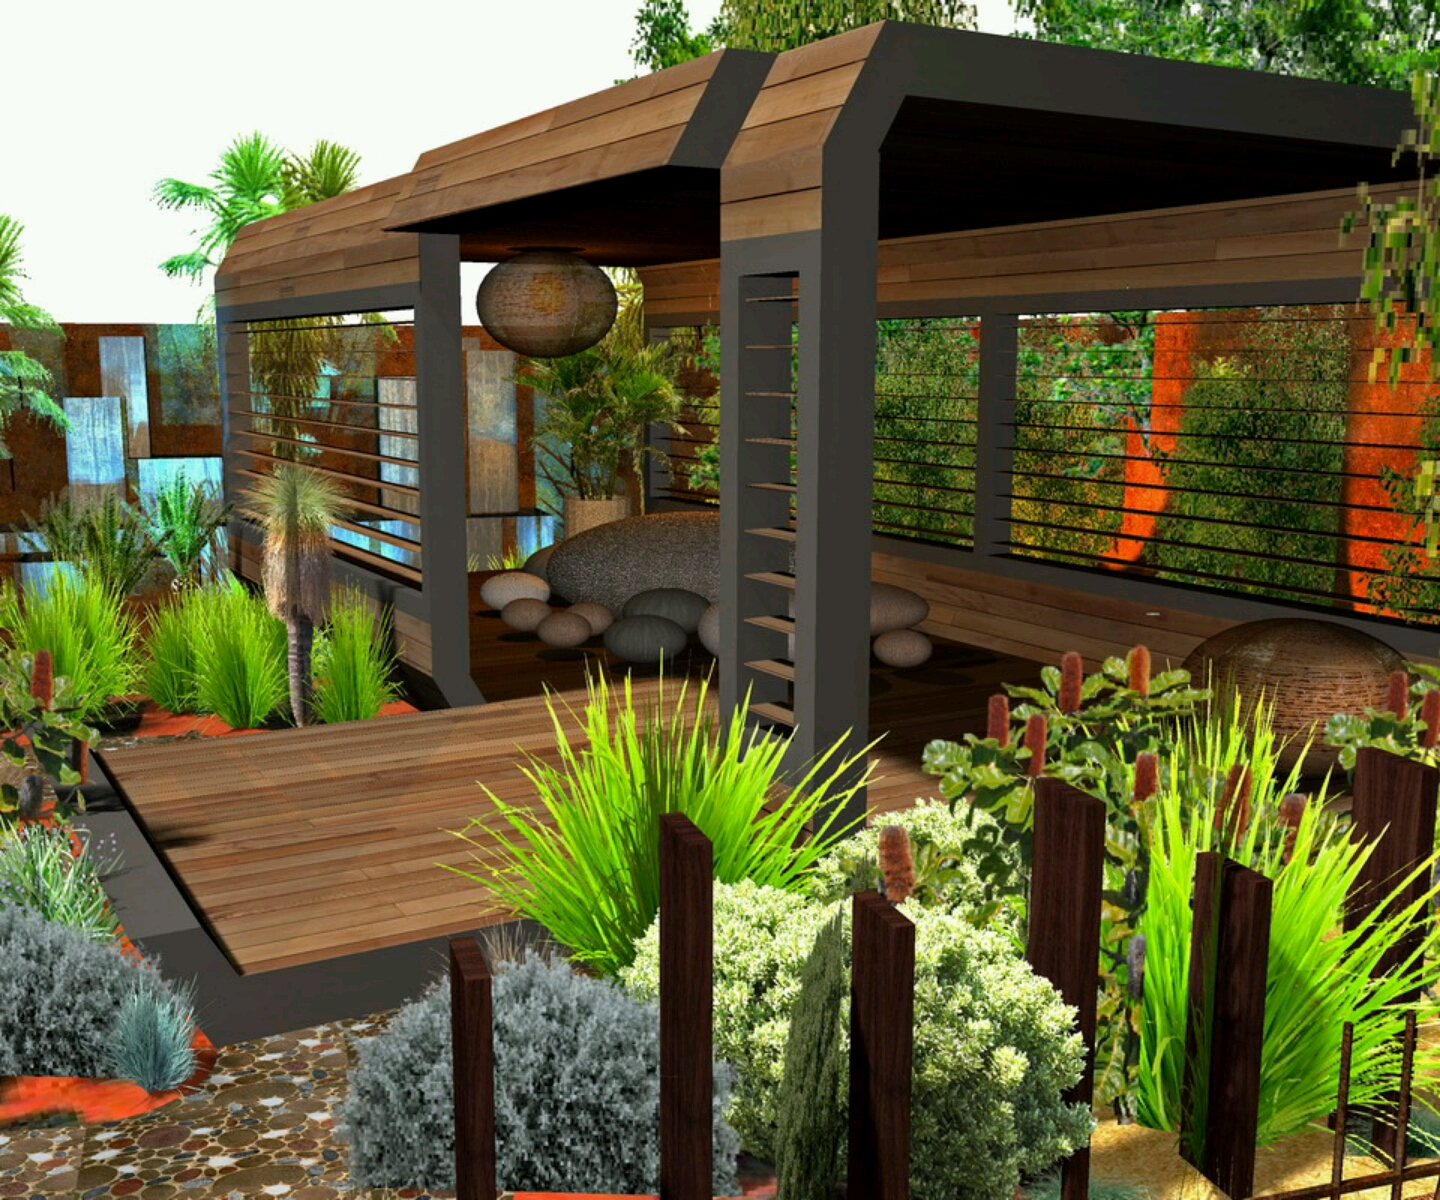 New home designs latest modern homes garden designs ideas for Garden design plans